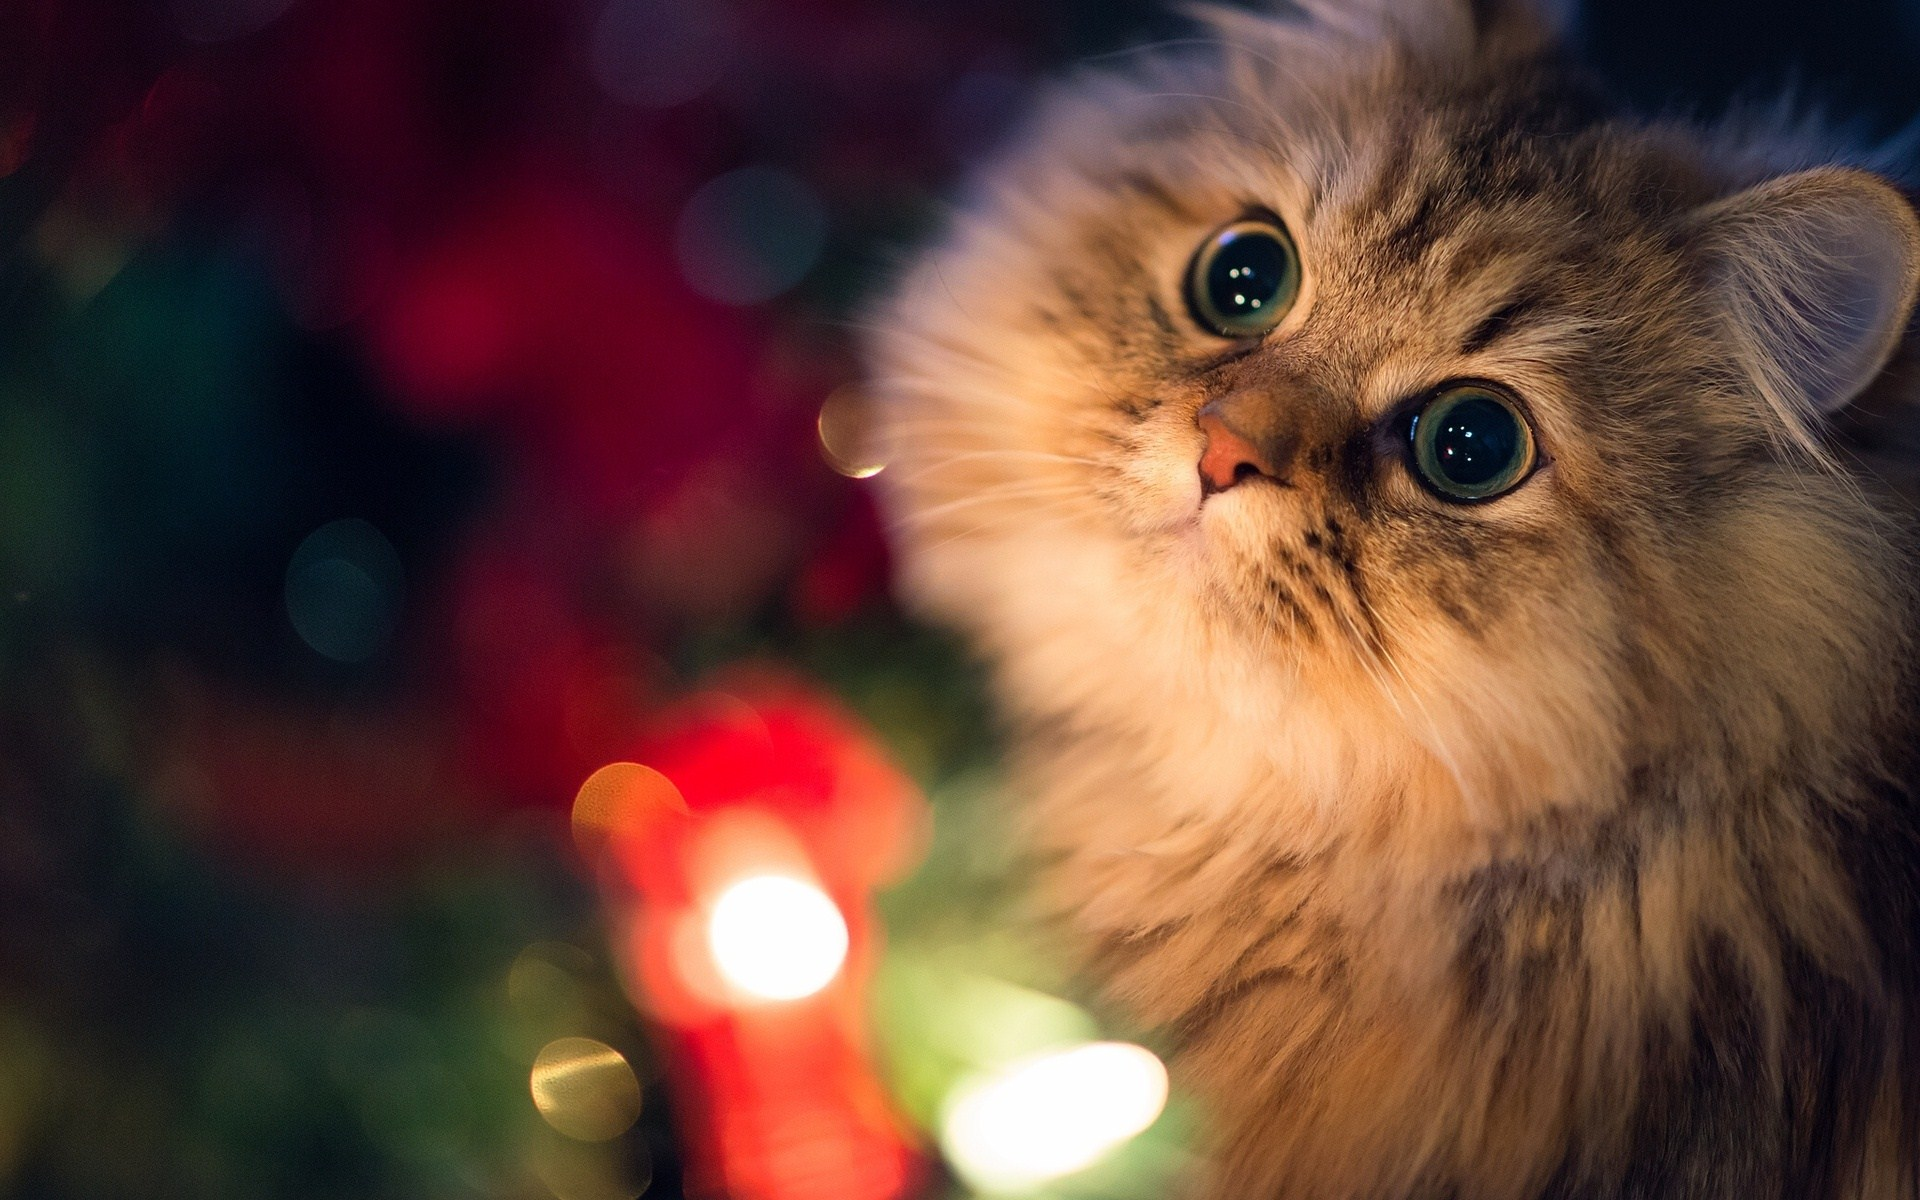 Close-Up Cat Lights Photo HD Wallpaper is a awesome hd photography. Free to upload, share the high definition photos. Close-Up Cat Lights Photo HD Wallpaper ...